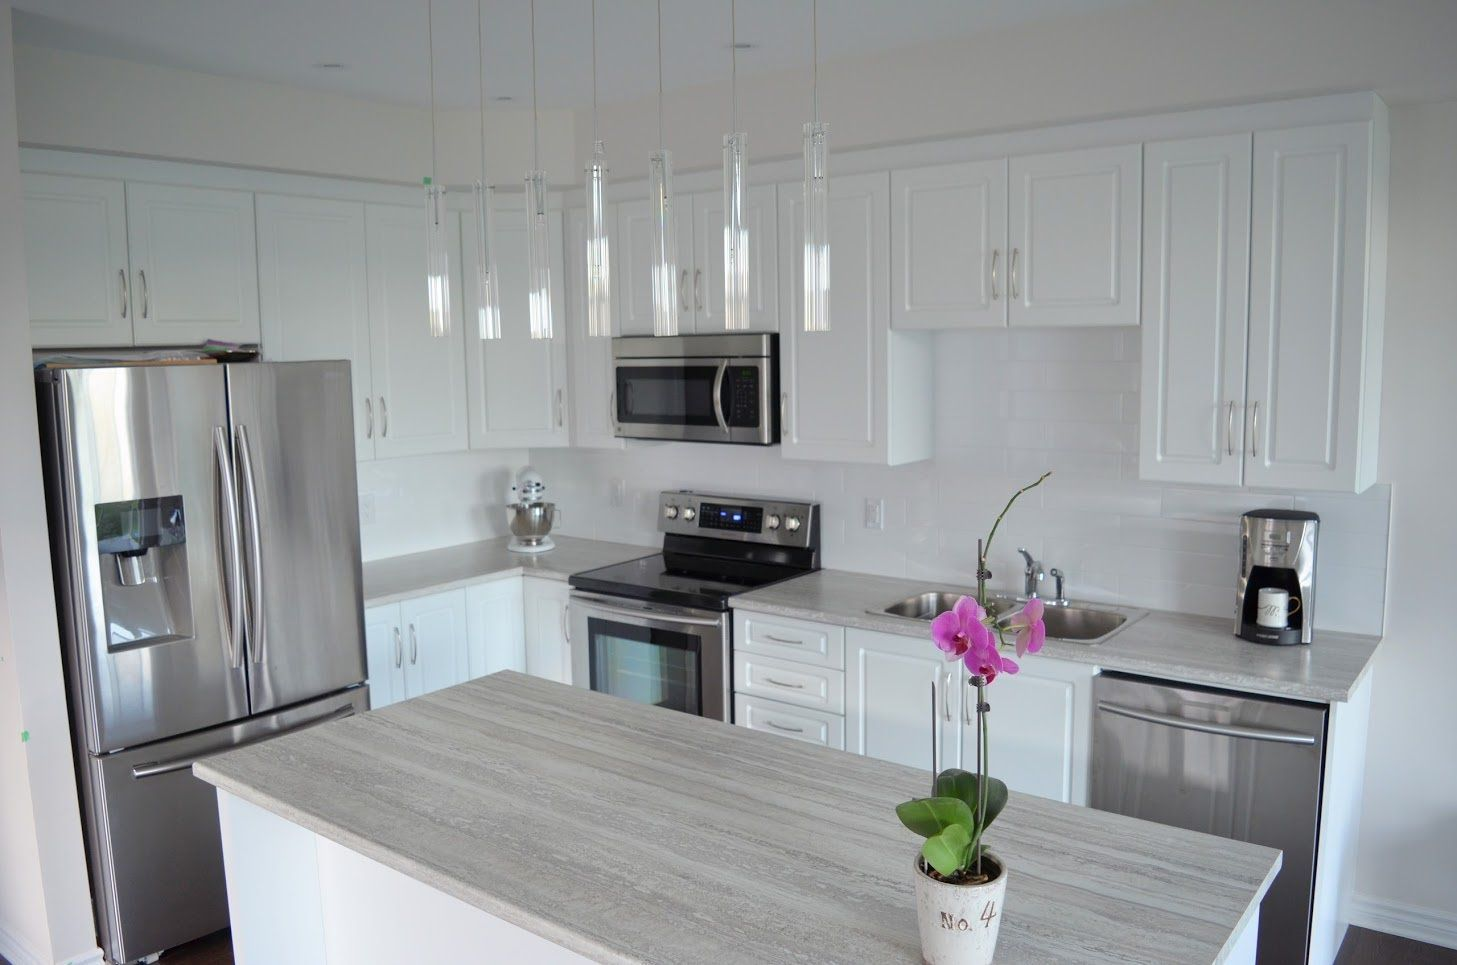 small kitchen ideas smart ways enlarge the worth kitchen island with sink kitchen interior on kitchen remodel with island open concept id=87032